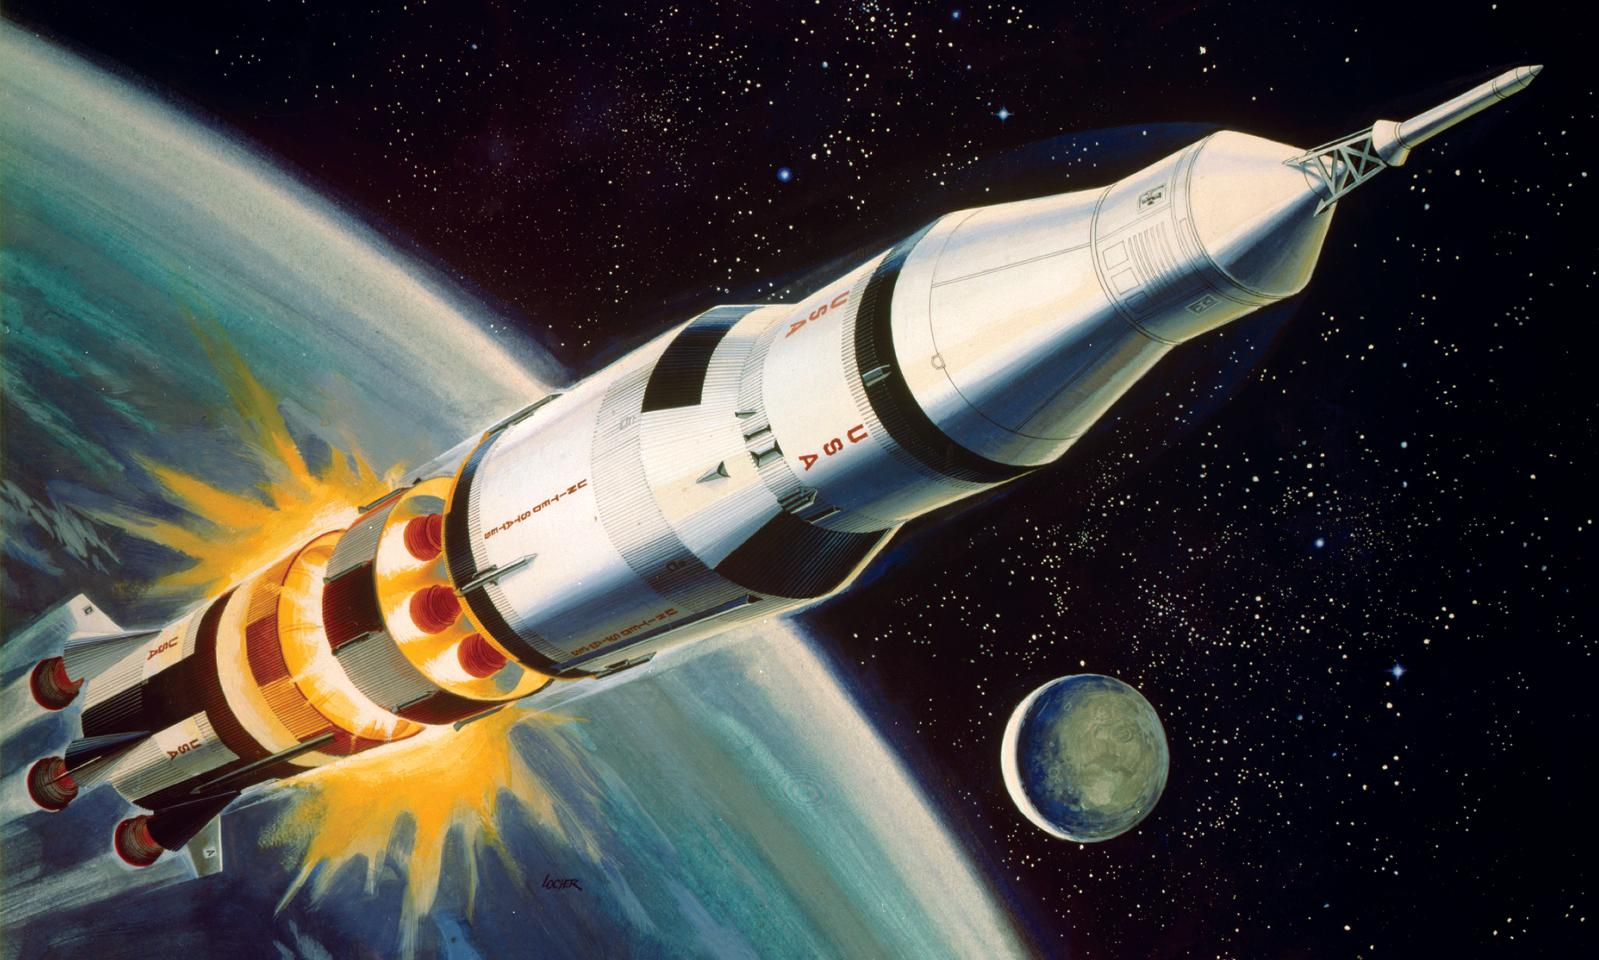 Revell 1:144 Scale Die Cast Detailed Easy to Assemble Saturn V Rocket